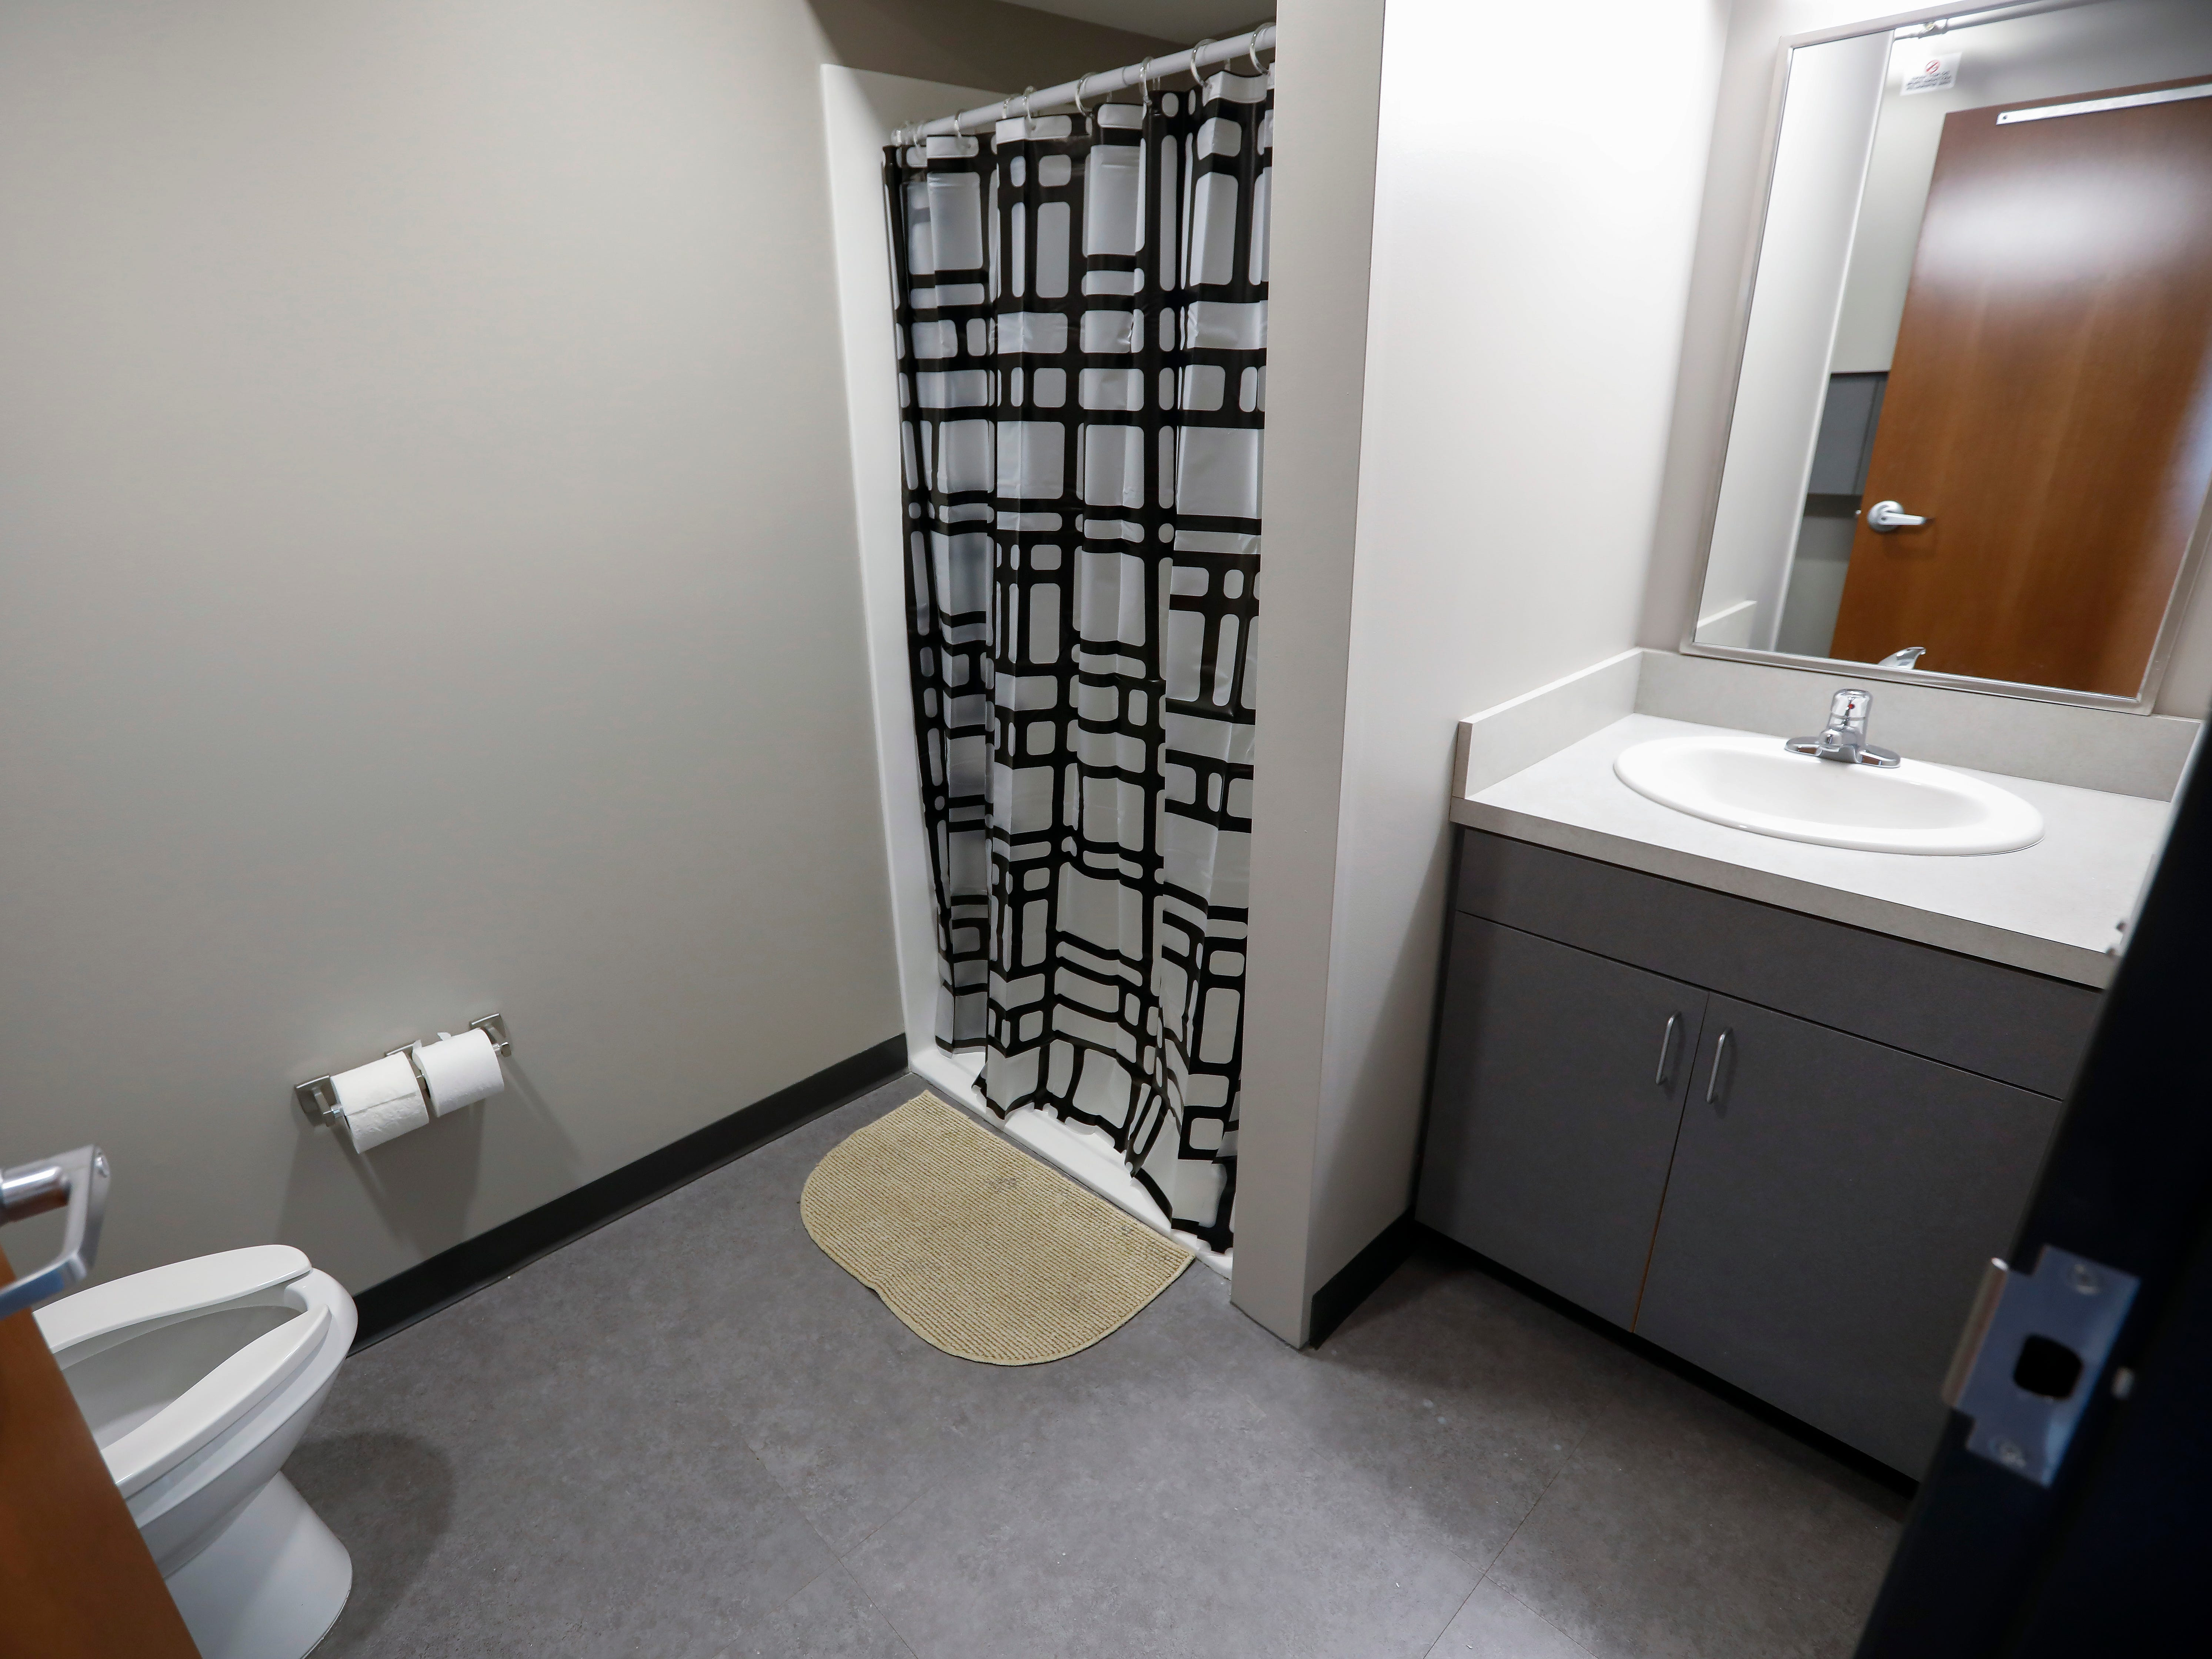 The bathroom inside one of the apartments at The Kitchen's new Emergency Shelter located at 1855 E. Chestnut Expressway.